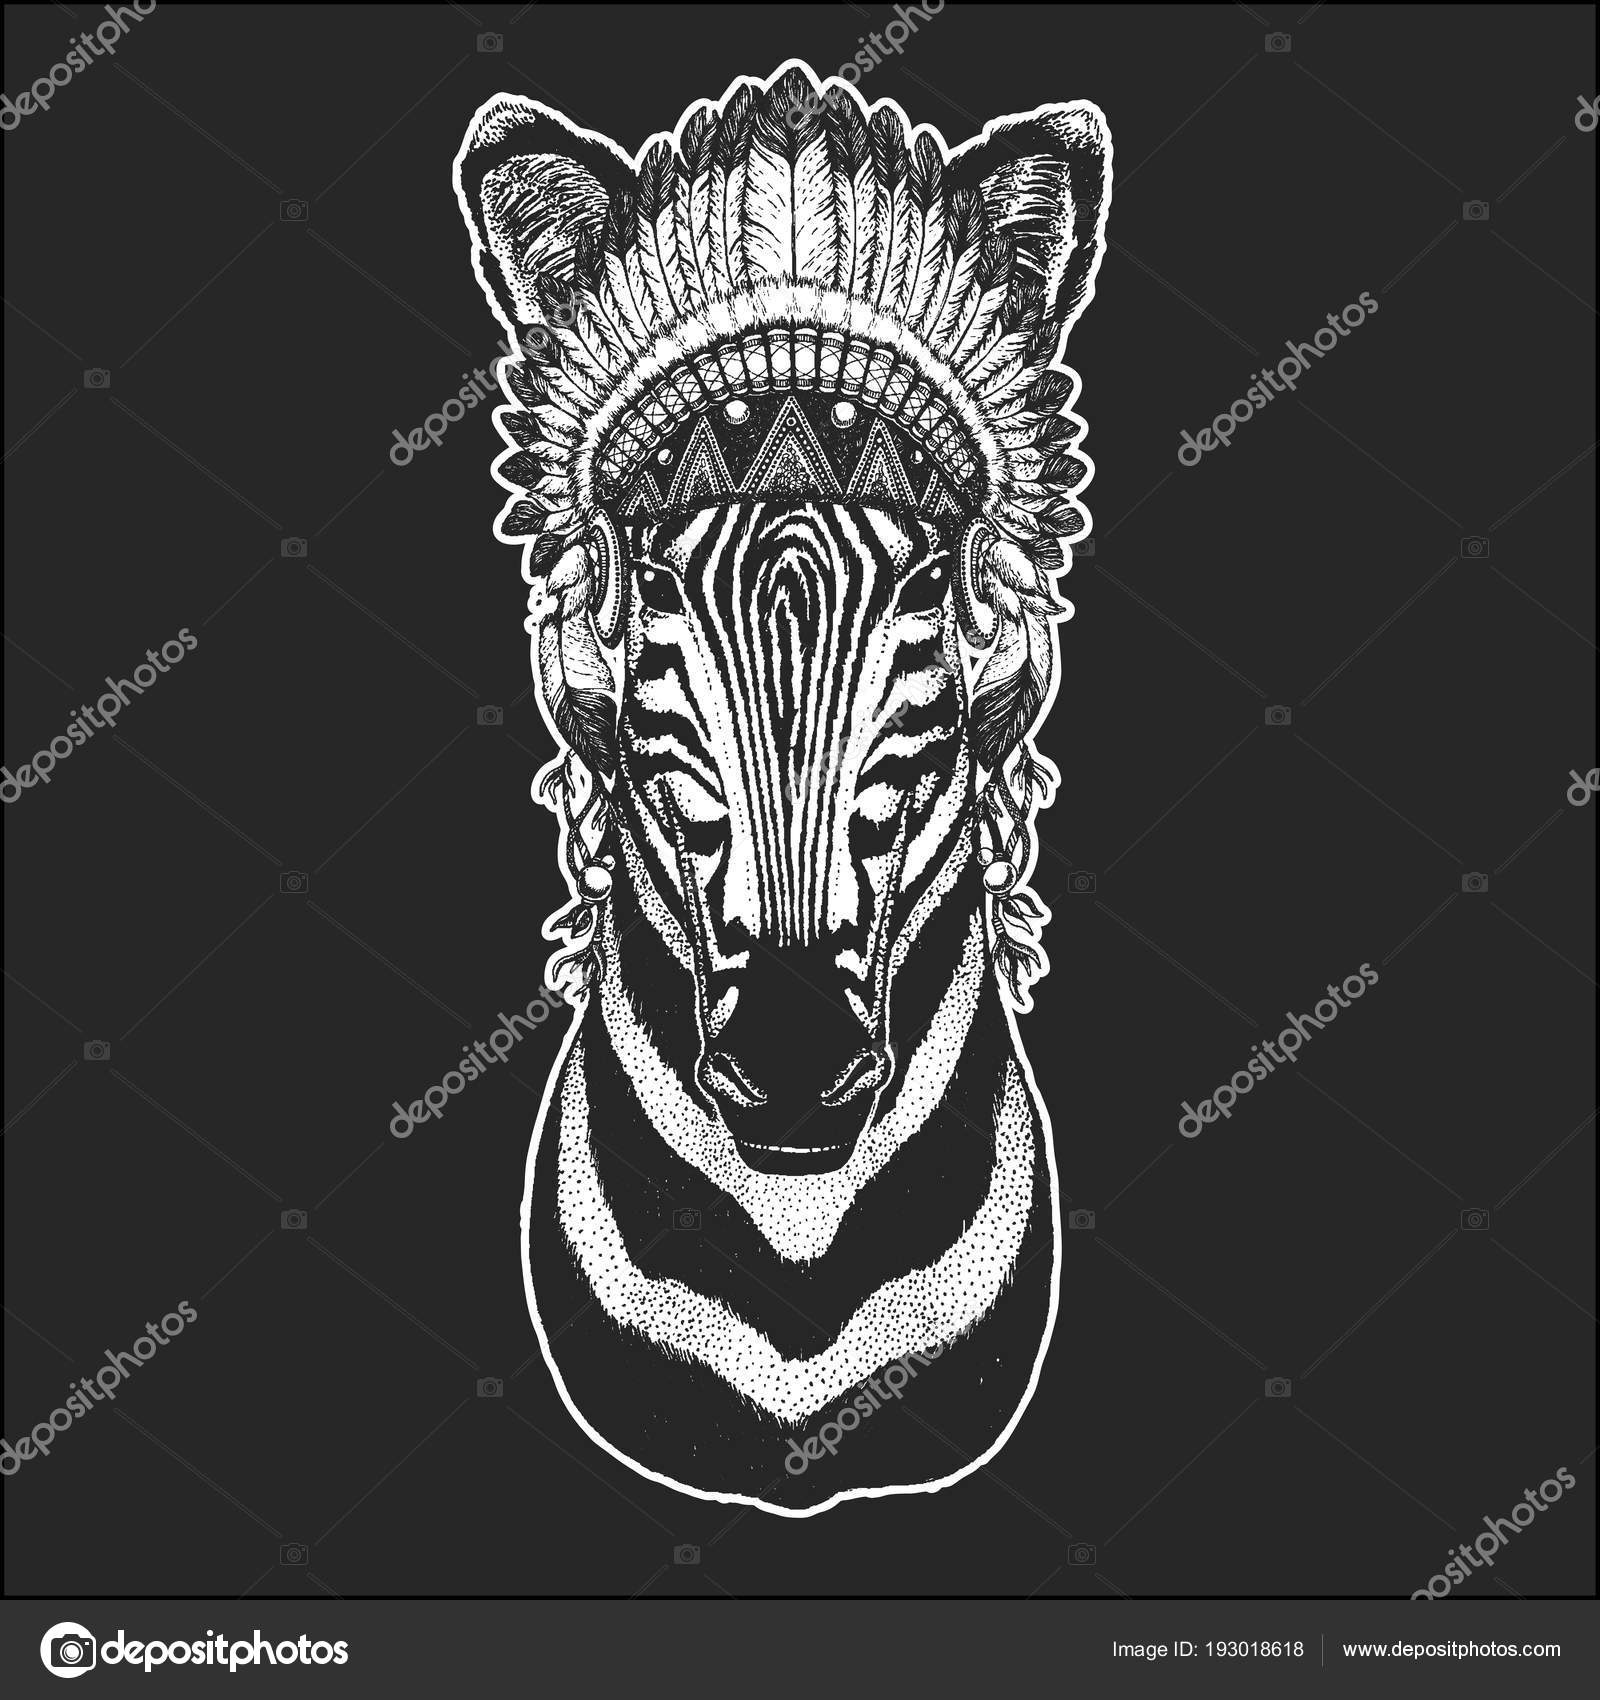 Indian War Horse Tattoos Zebra Horse Cool Animal Wearing Native American Indian Headdress With Feathers Boho Chic Style Hand Drawn Image For Tattoo Emblem Badge Logo Patch Stock Vector C Helen F 193018618